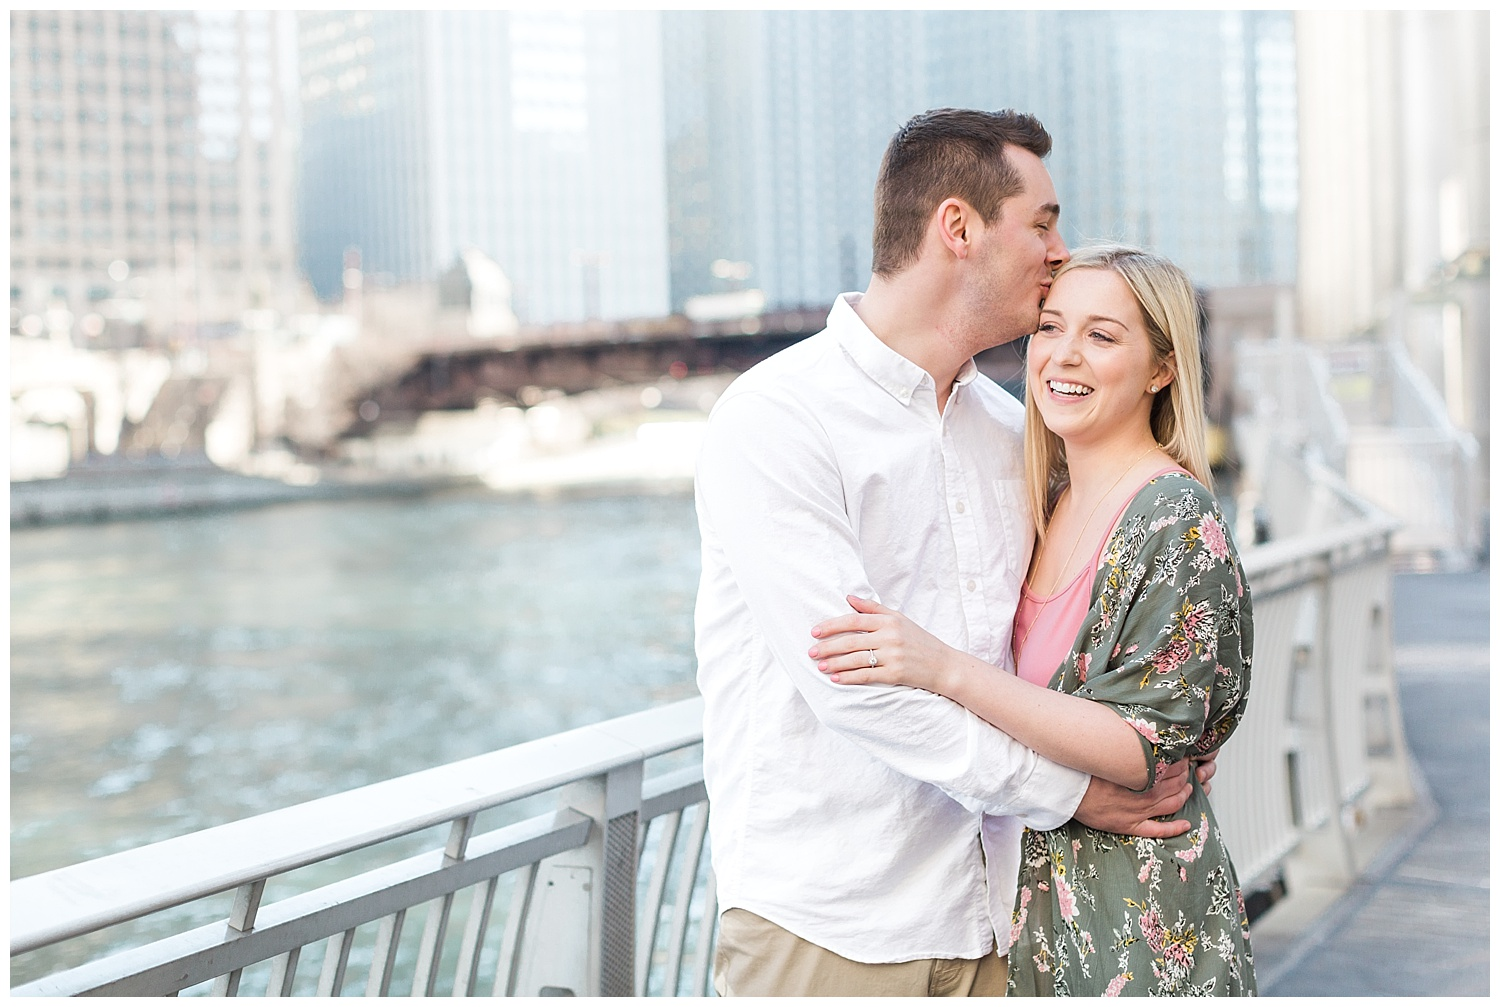 wrigley-building-chicago-engagement-pink-dress-romantic-michigan-ave_0002.jpg